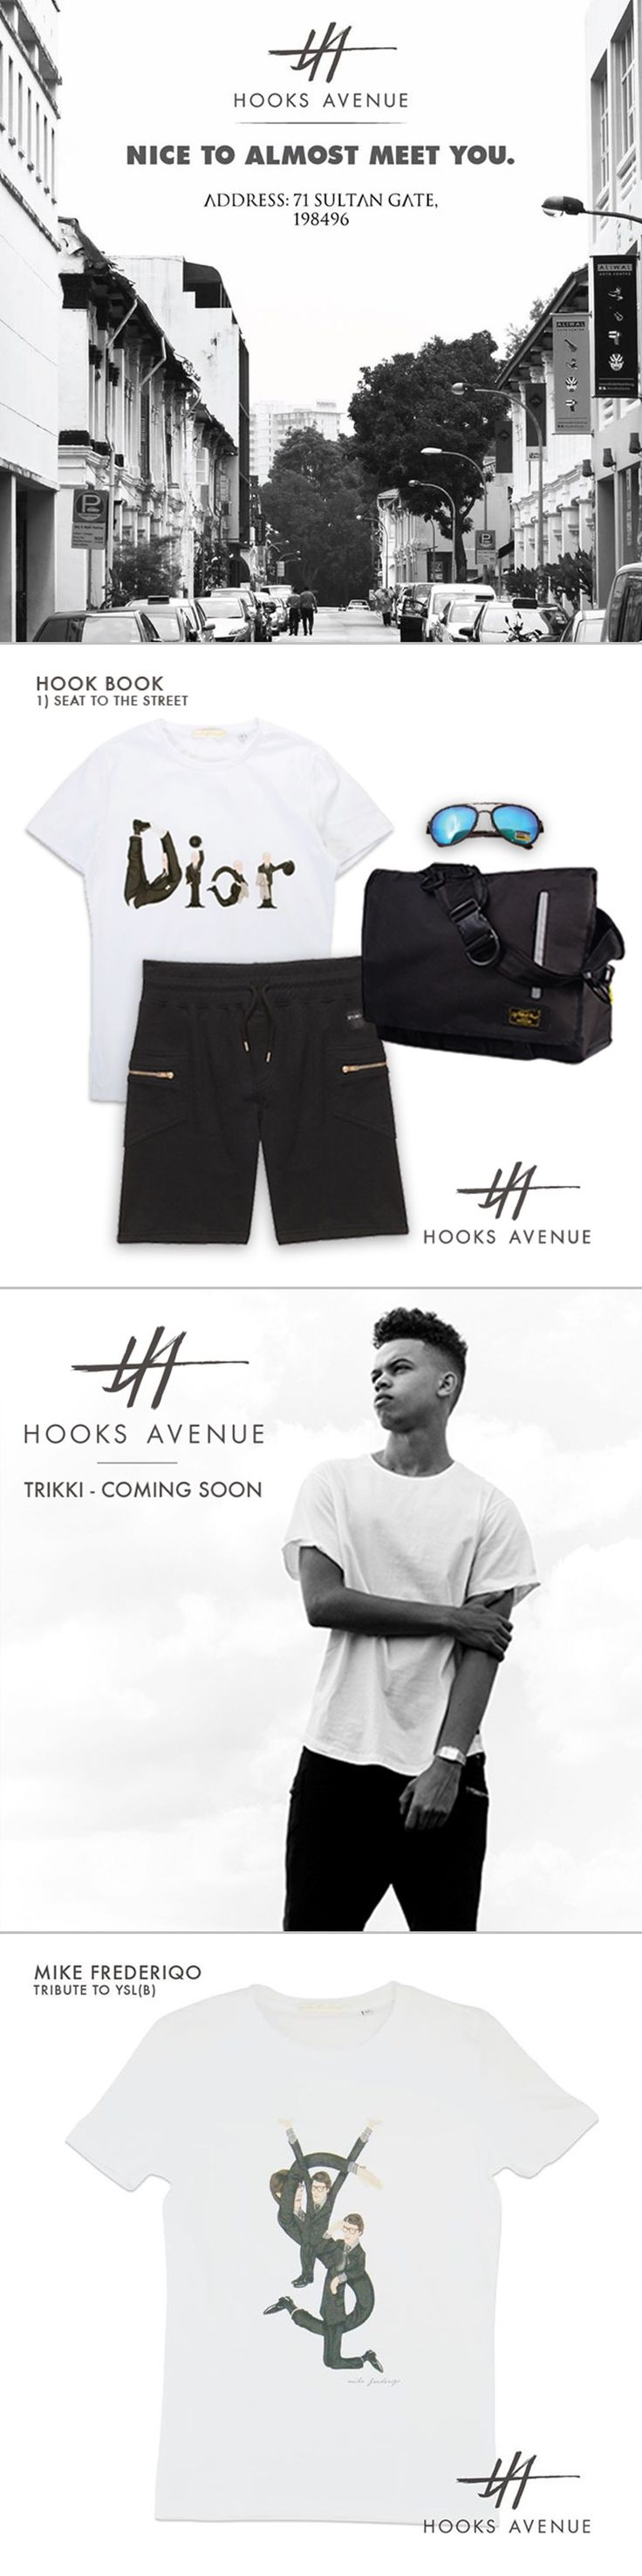 Hooks Avenue is an e-commerce fashion brand we partner up with. We manage their Facebook as well, and create/design posts like style ideas & product information for them.